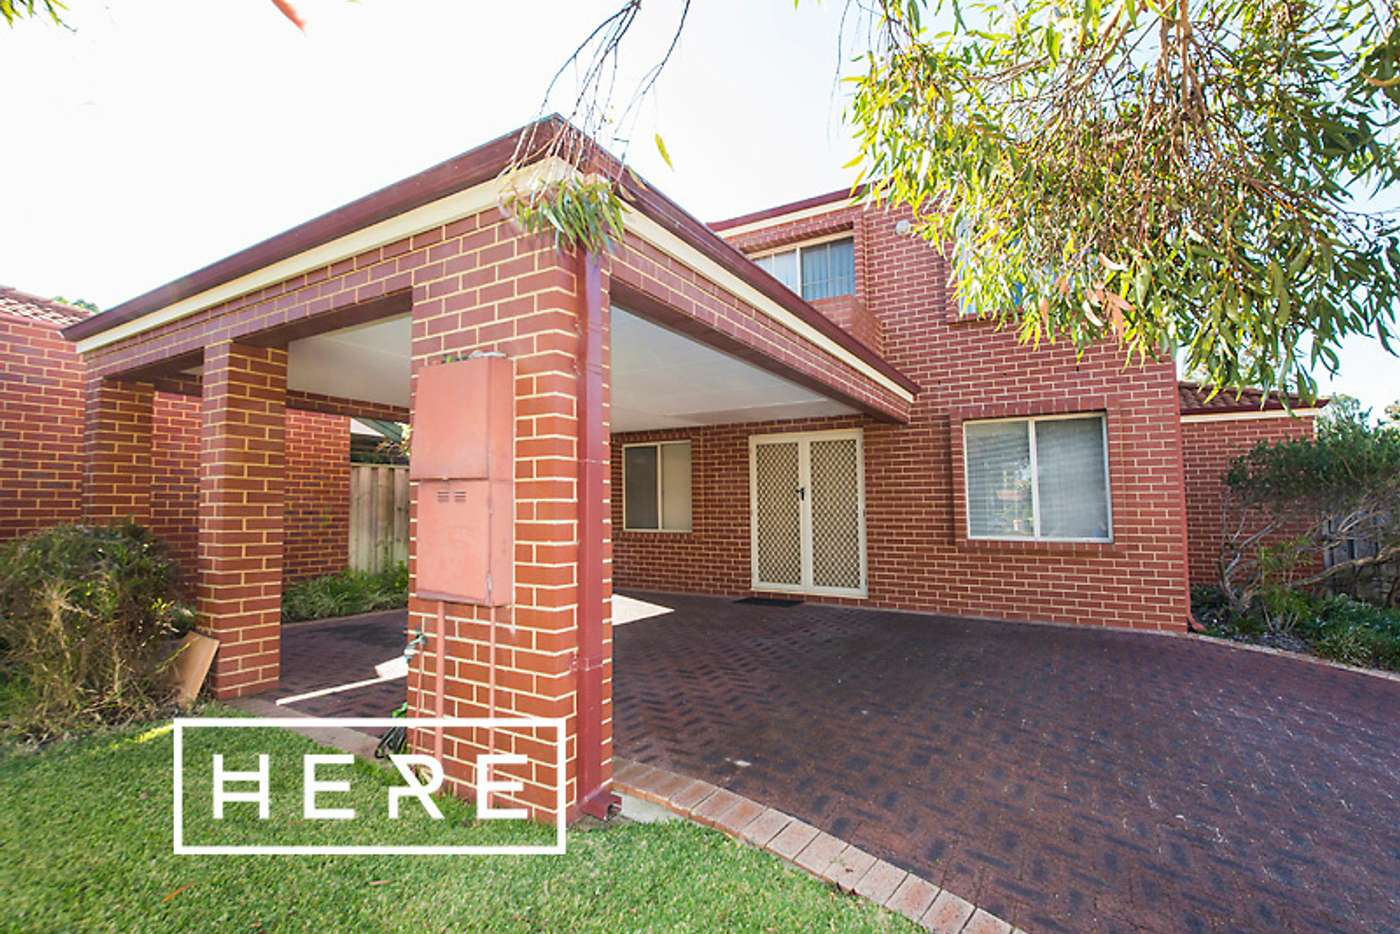 Main view of Homely house listing, 4 Tomito Court, Ascot WA 6104